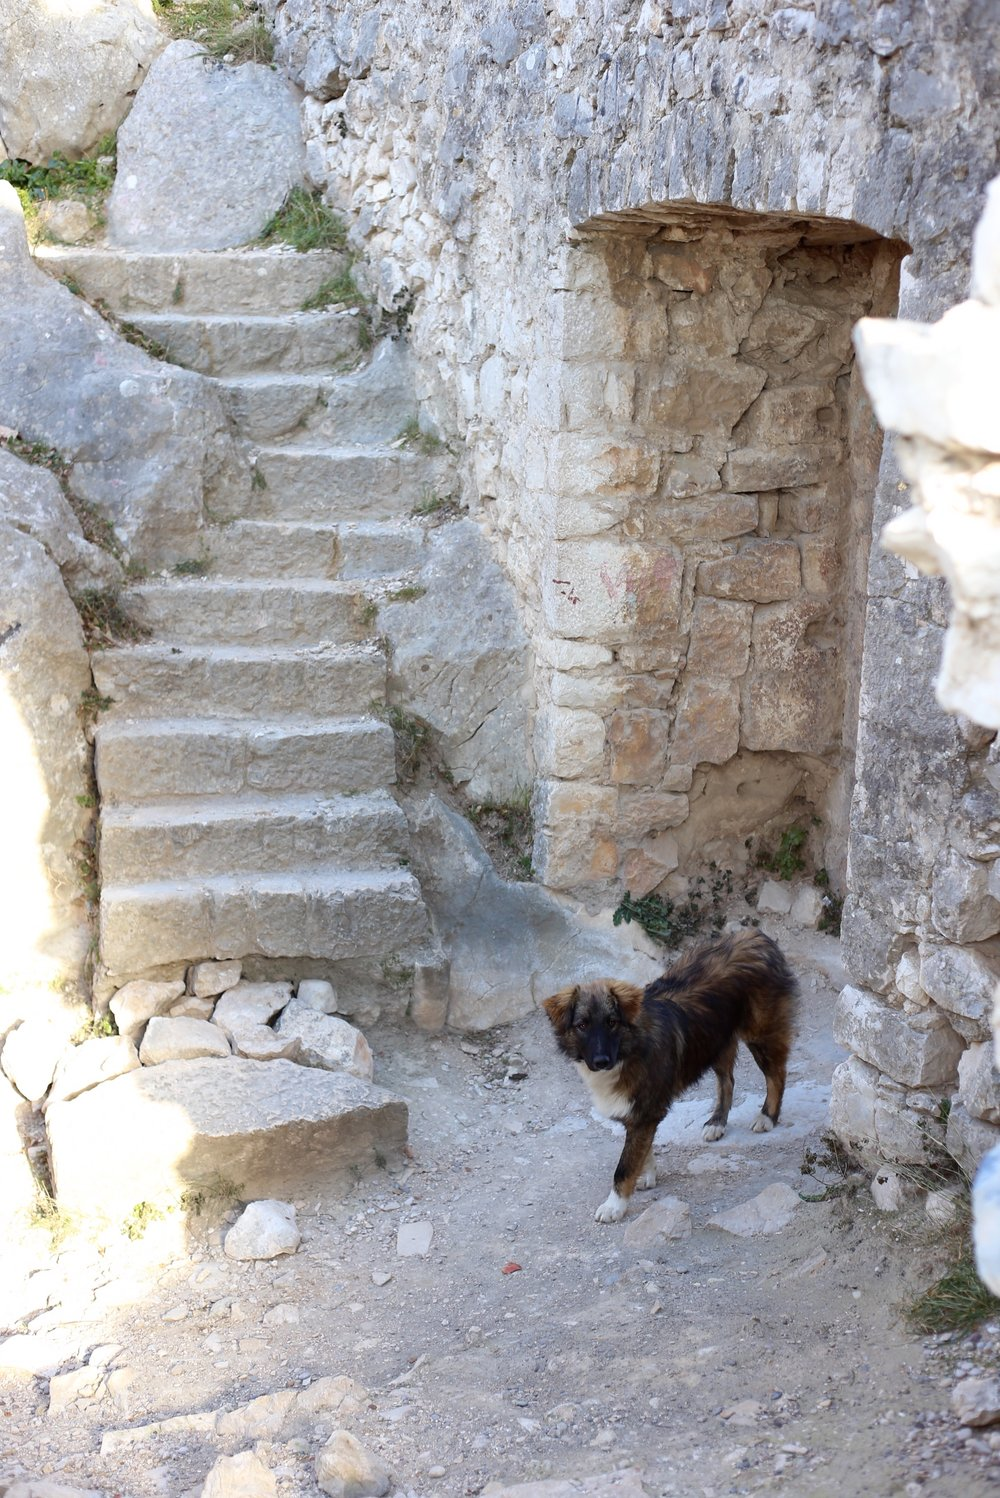 Curious dog abandoned in the ruins of a castle.